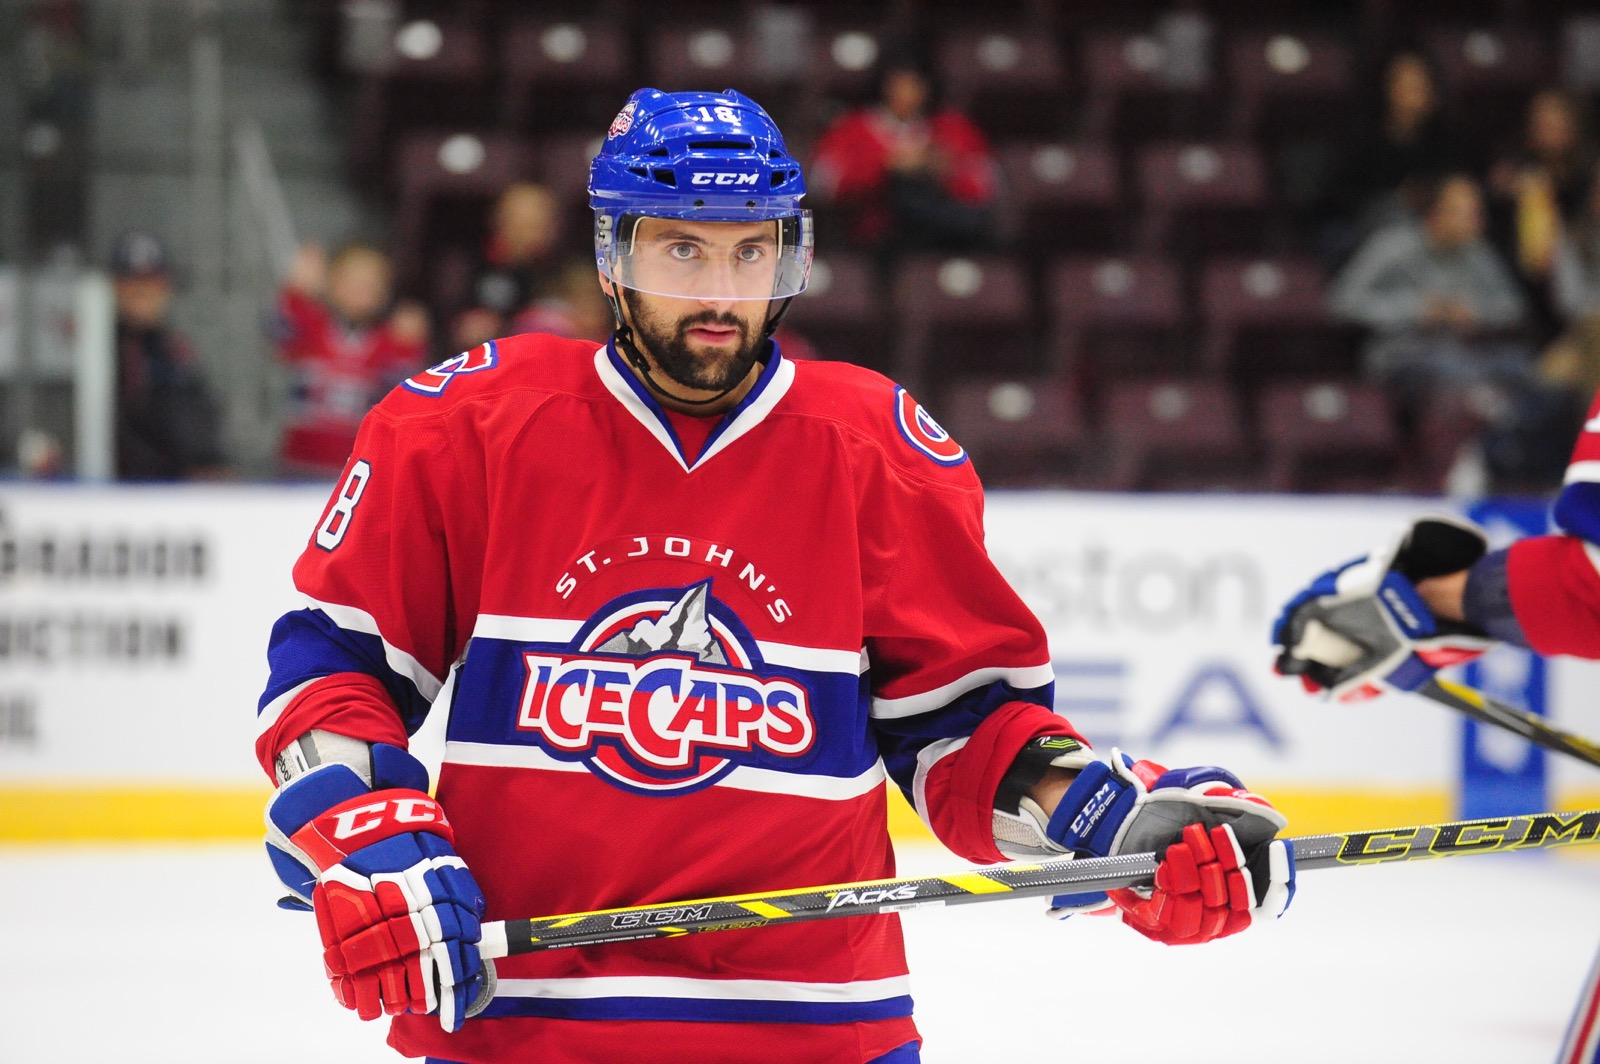 Angelo Miceli (Photo by St. John's IceCaps)